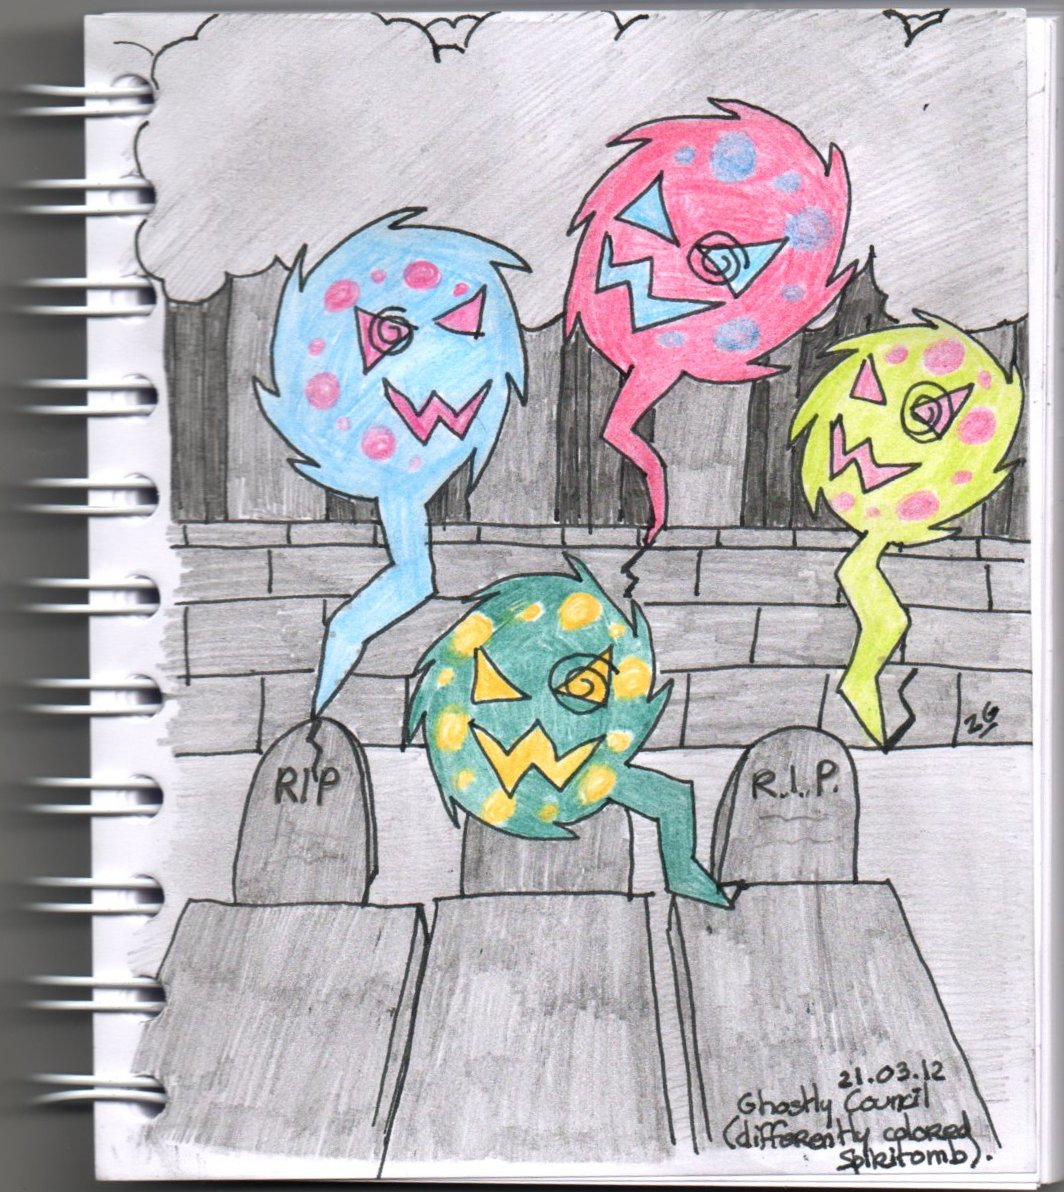 Ghostly Council of the Spiritomb by pwassonne